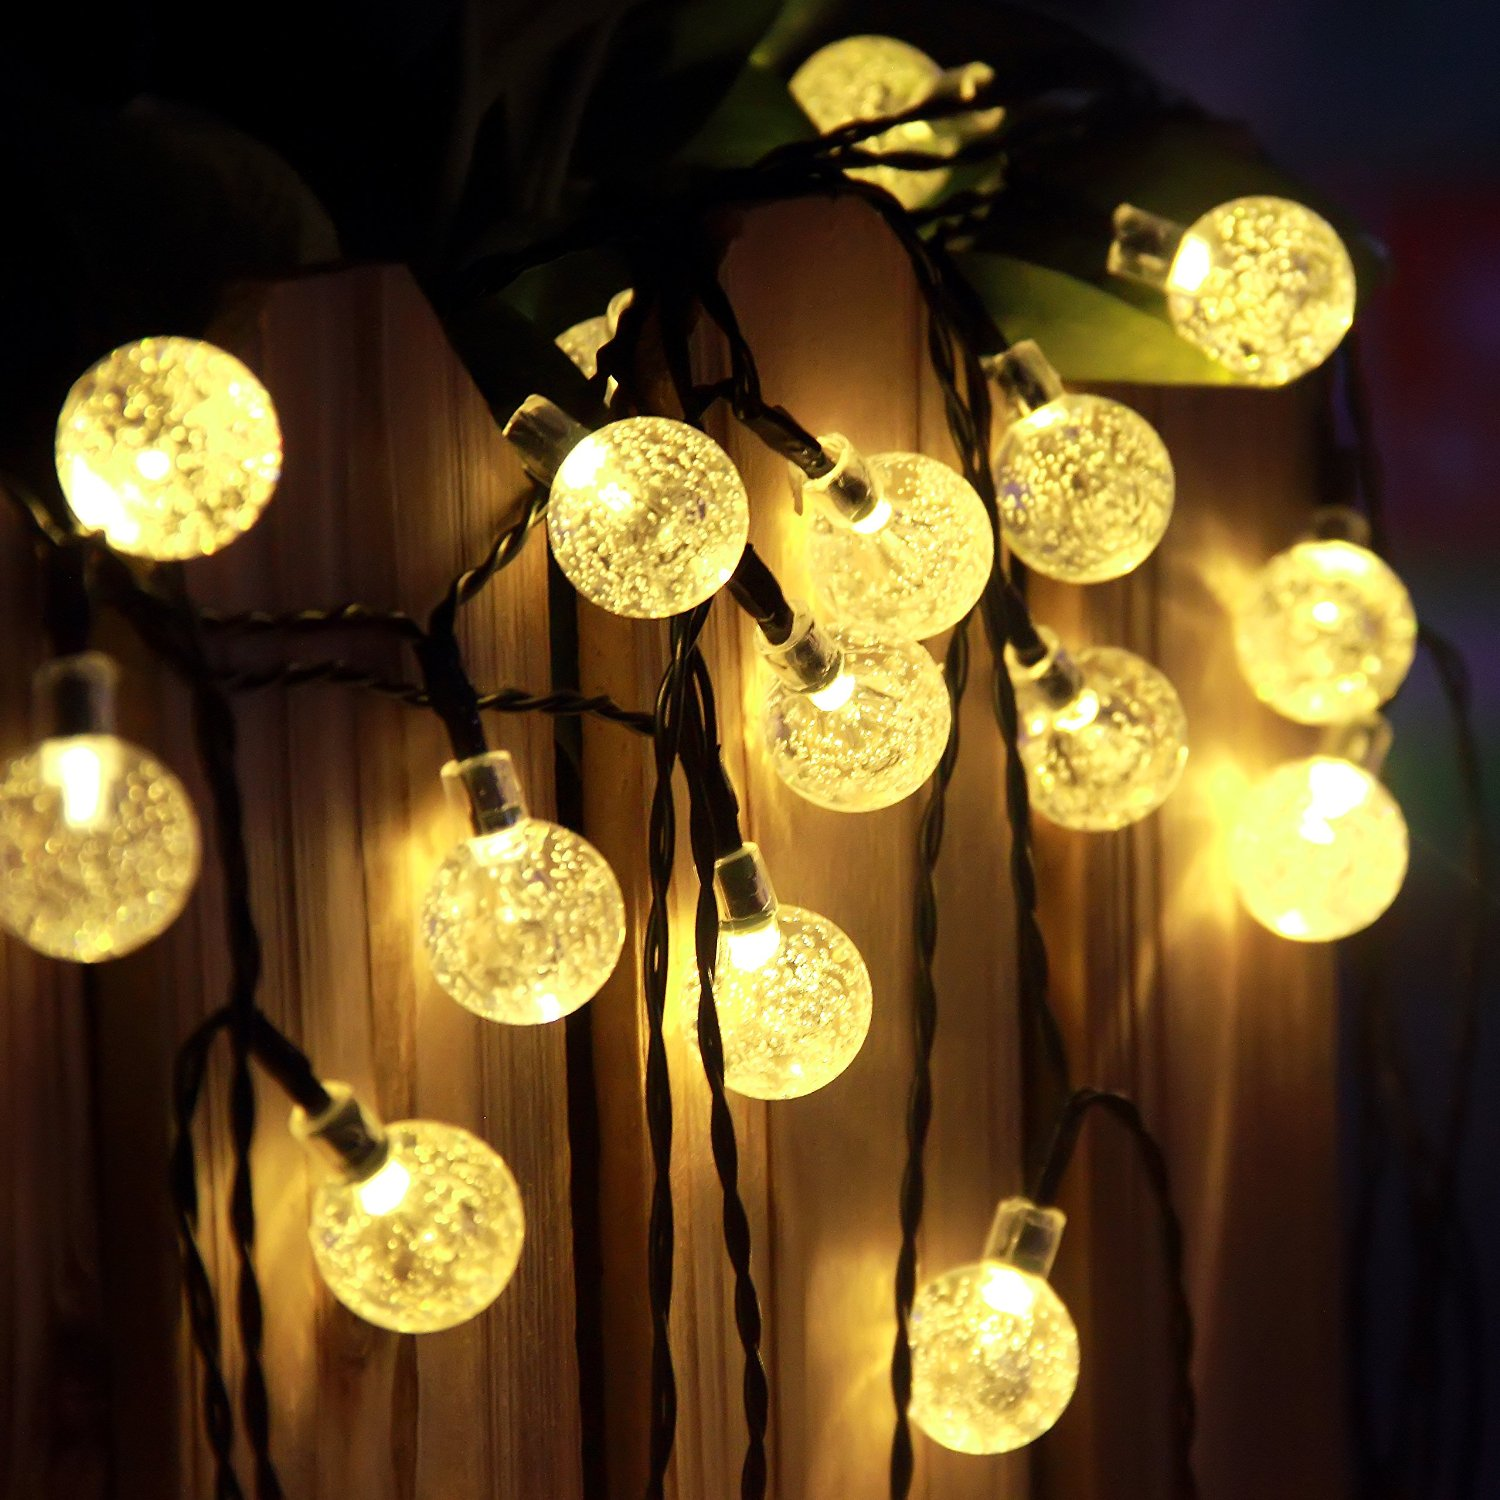 led-crystal-ball-solar-string-lights-image-3.jpg